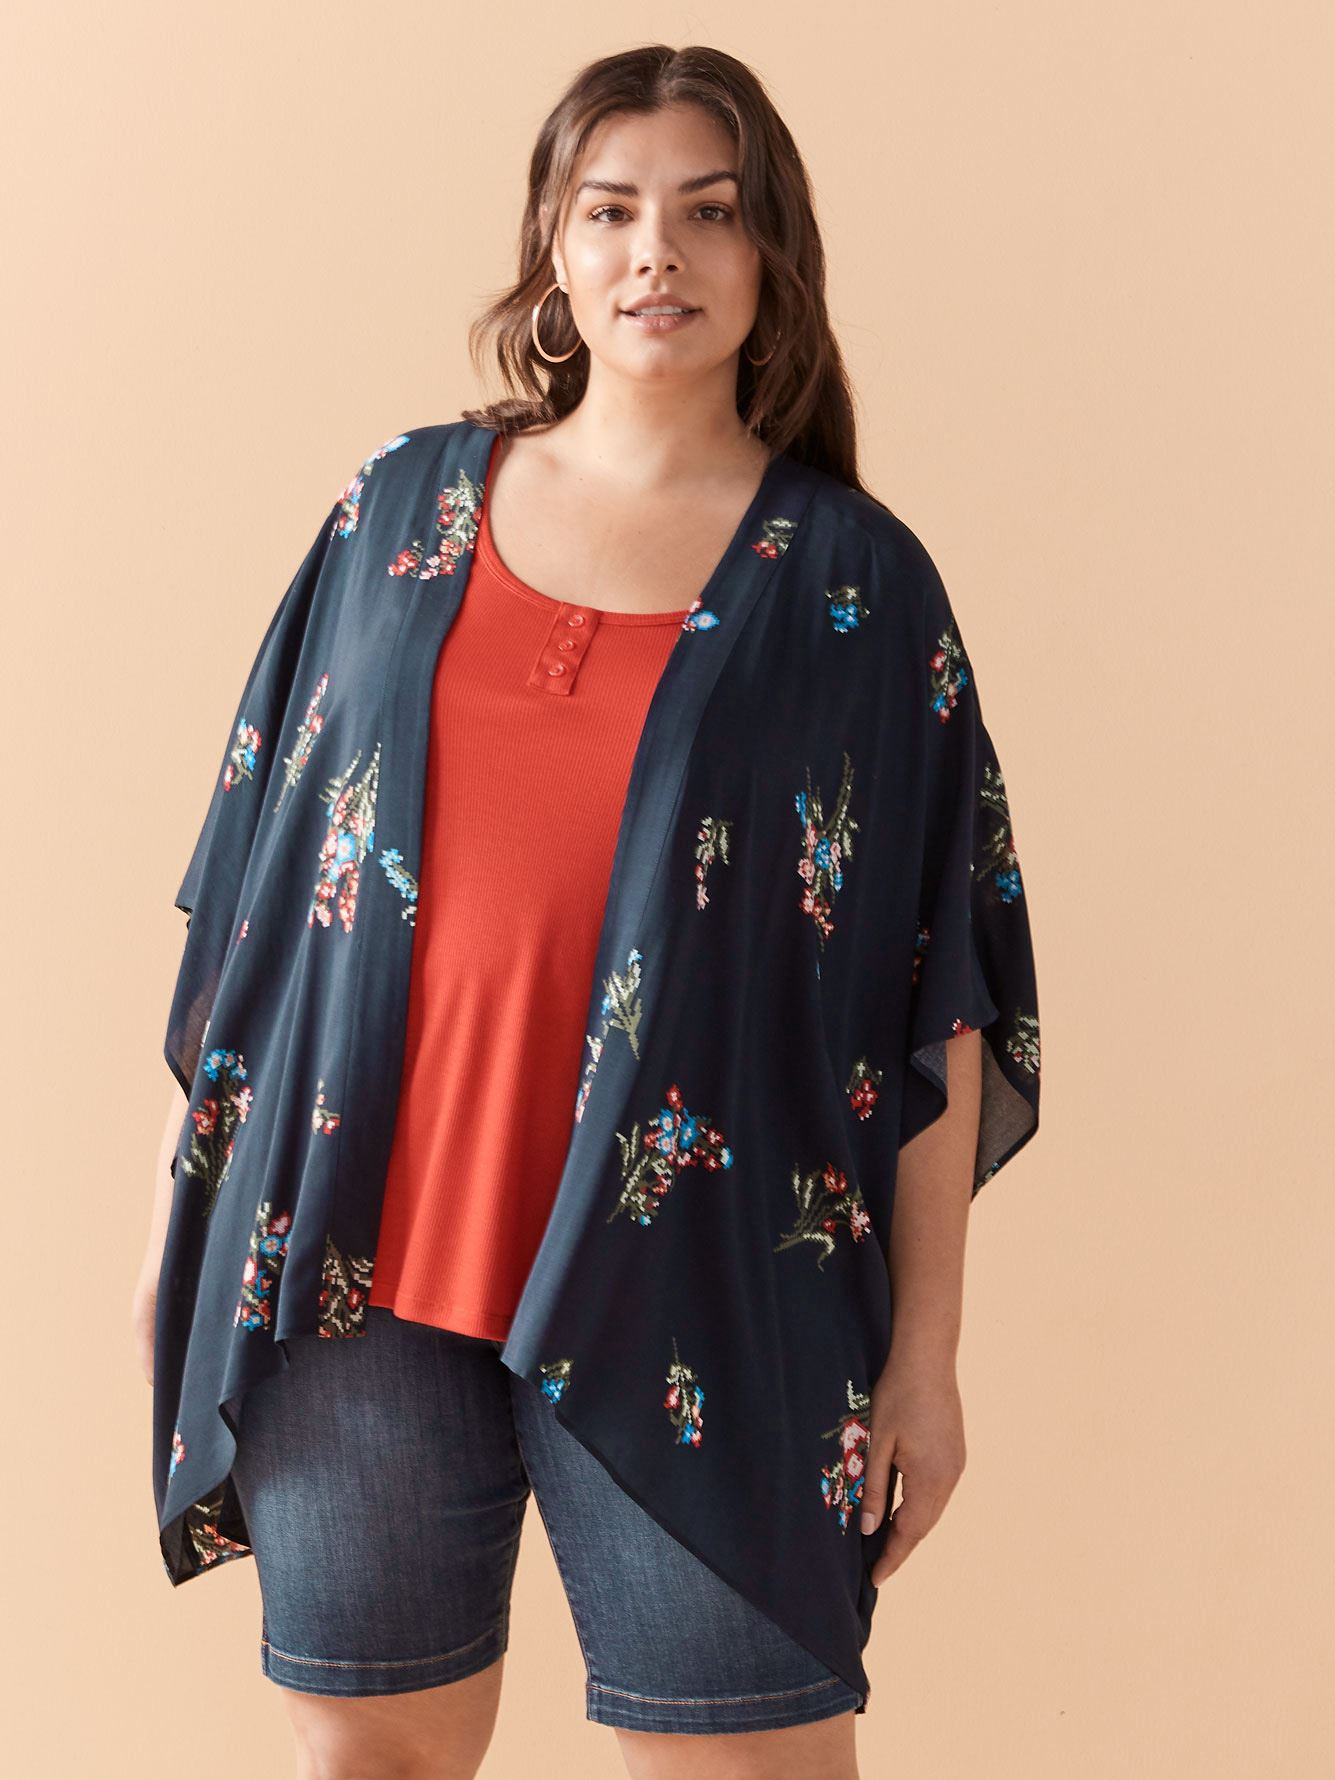 Short Sleeve Cover Up Kimono Top - In Every Story 10